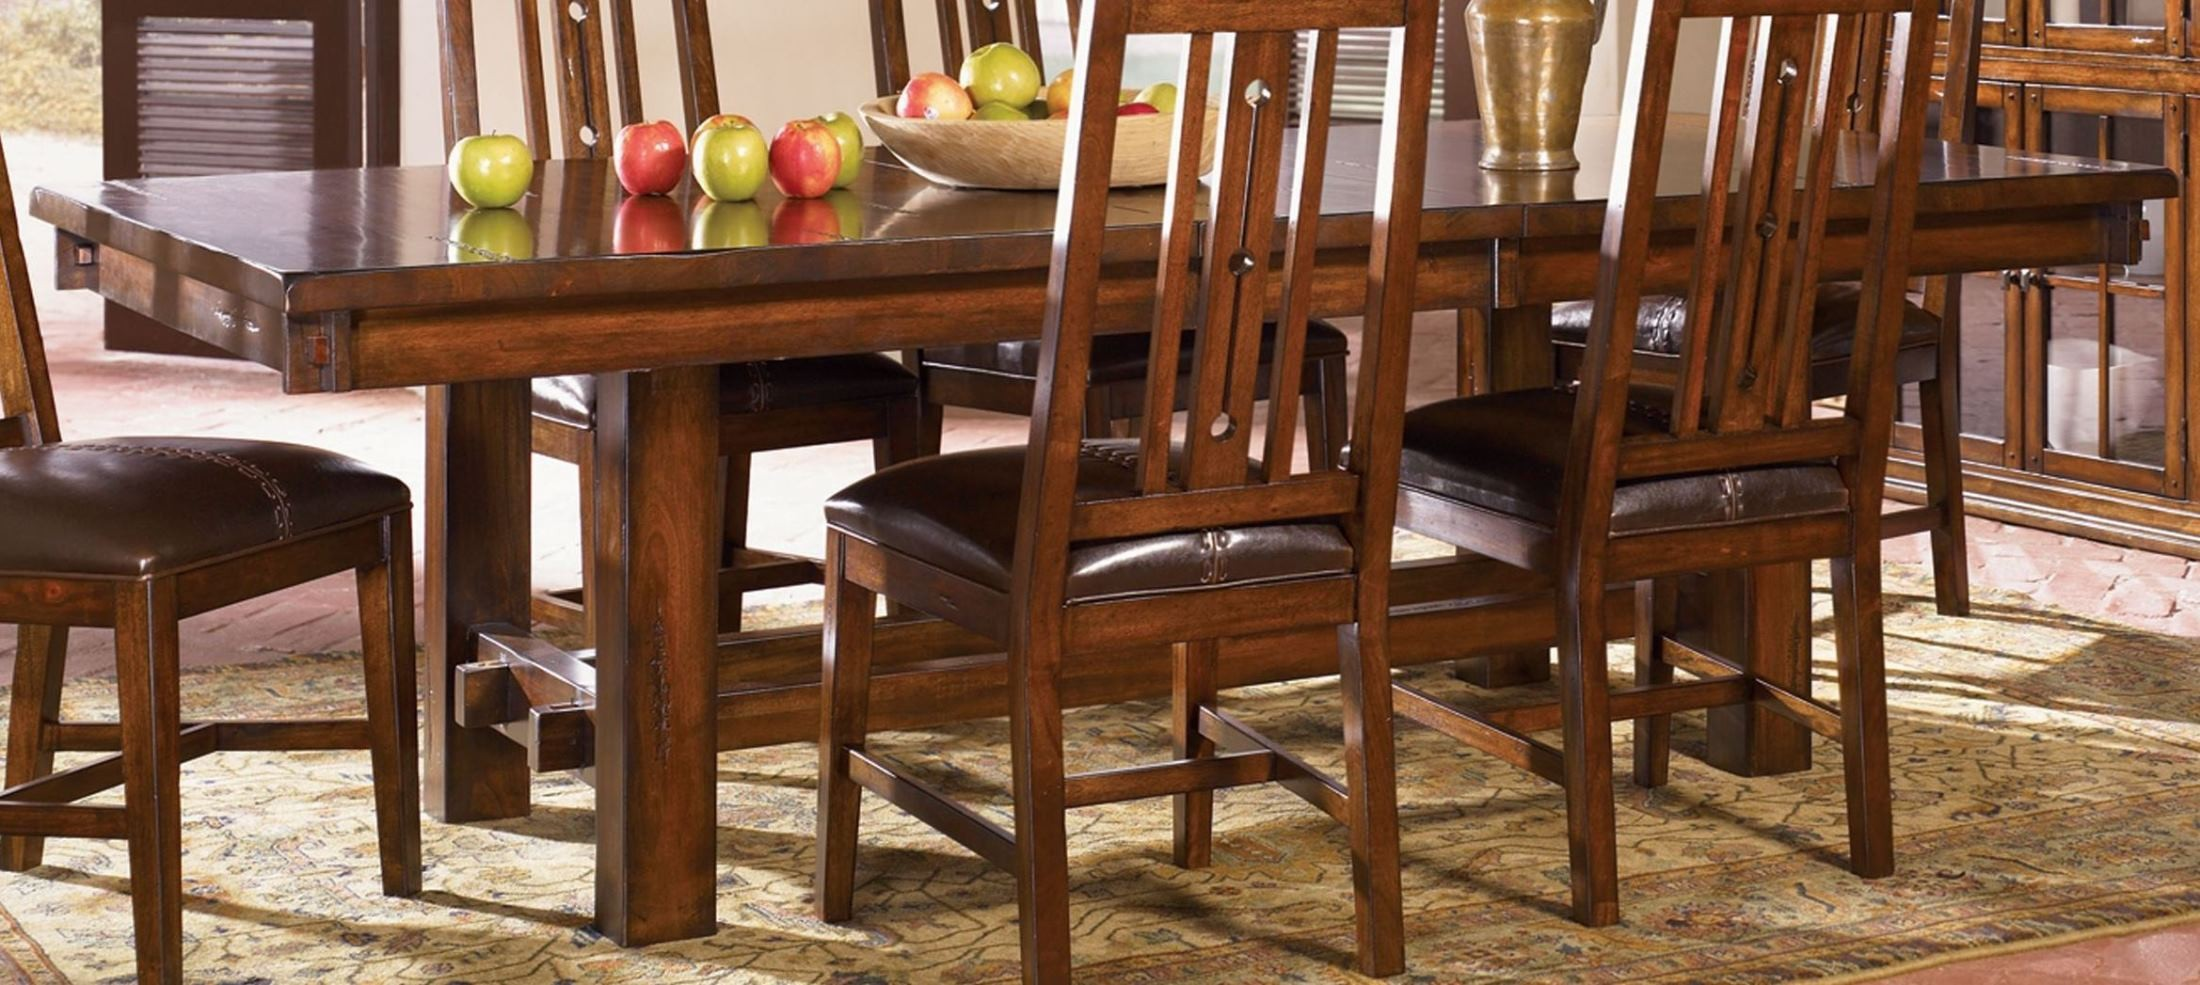 Mesa rustica 92 aged mahogany extendable trestle dining - Mesas rusticas ...